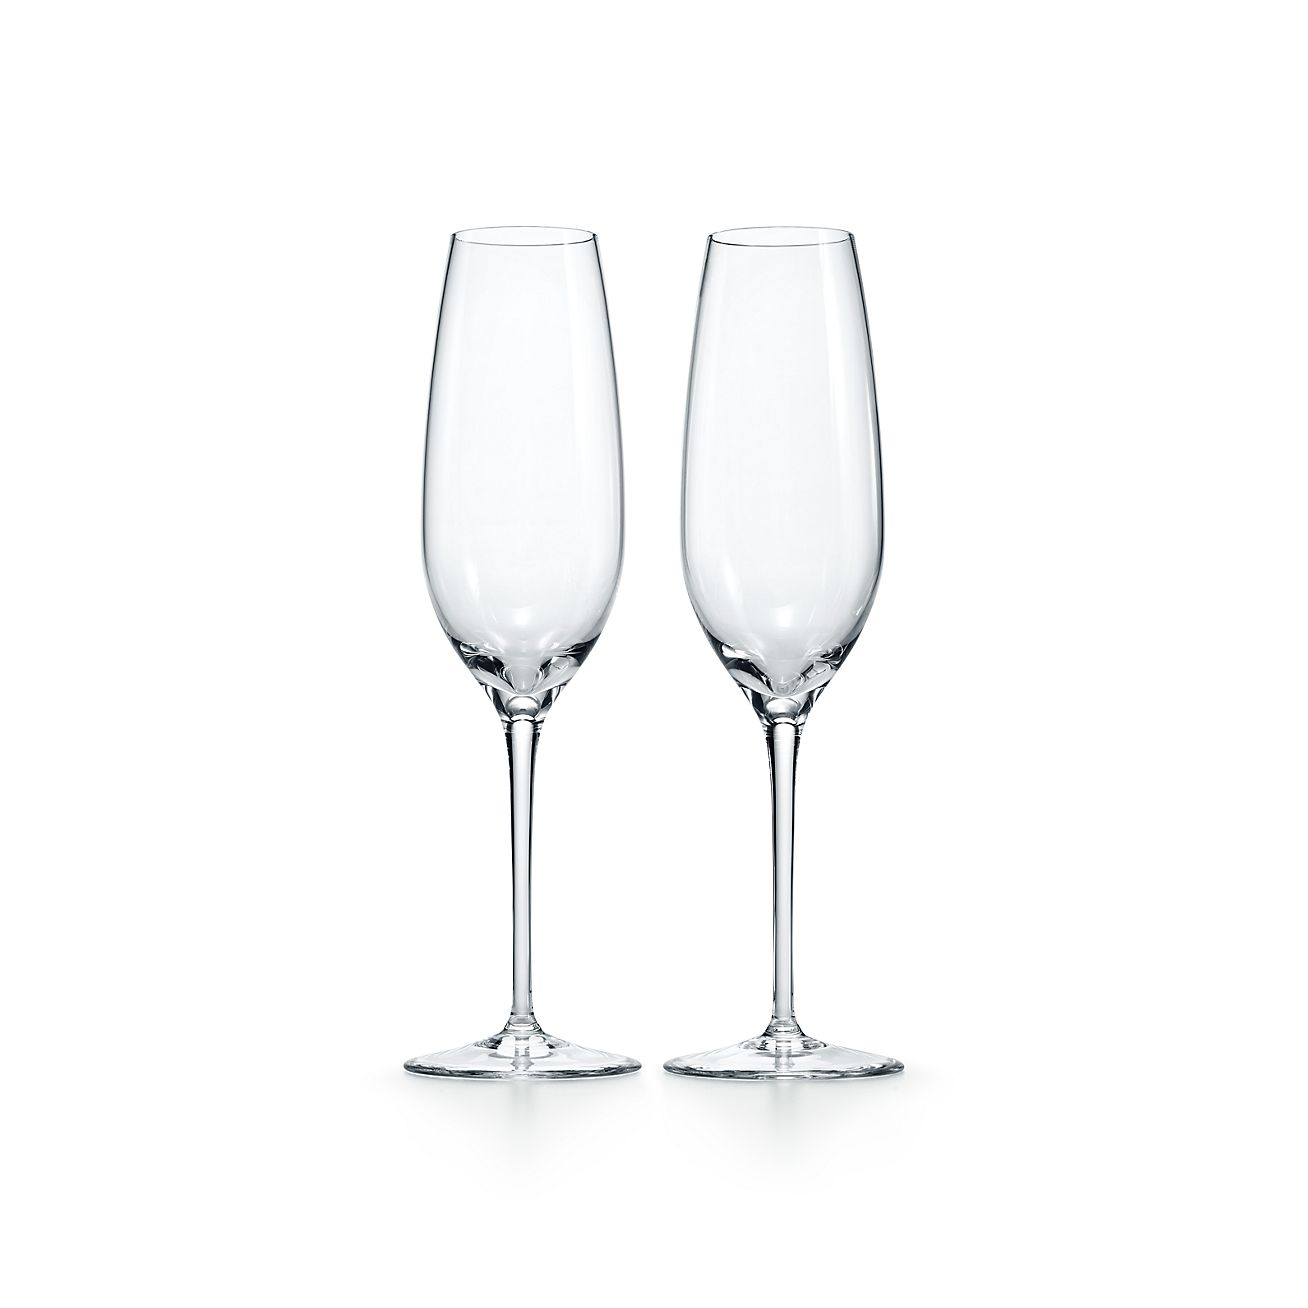 Champagne flute in crystal, set of two. | Tiffany & Co.